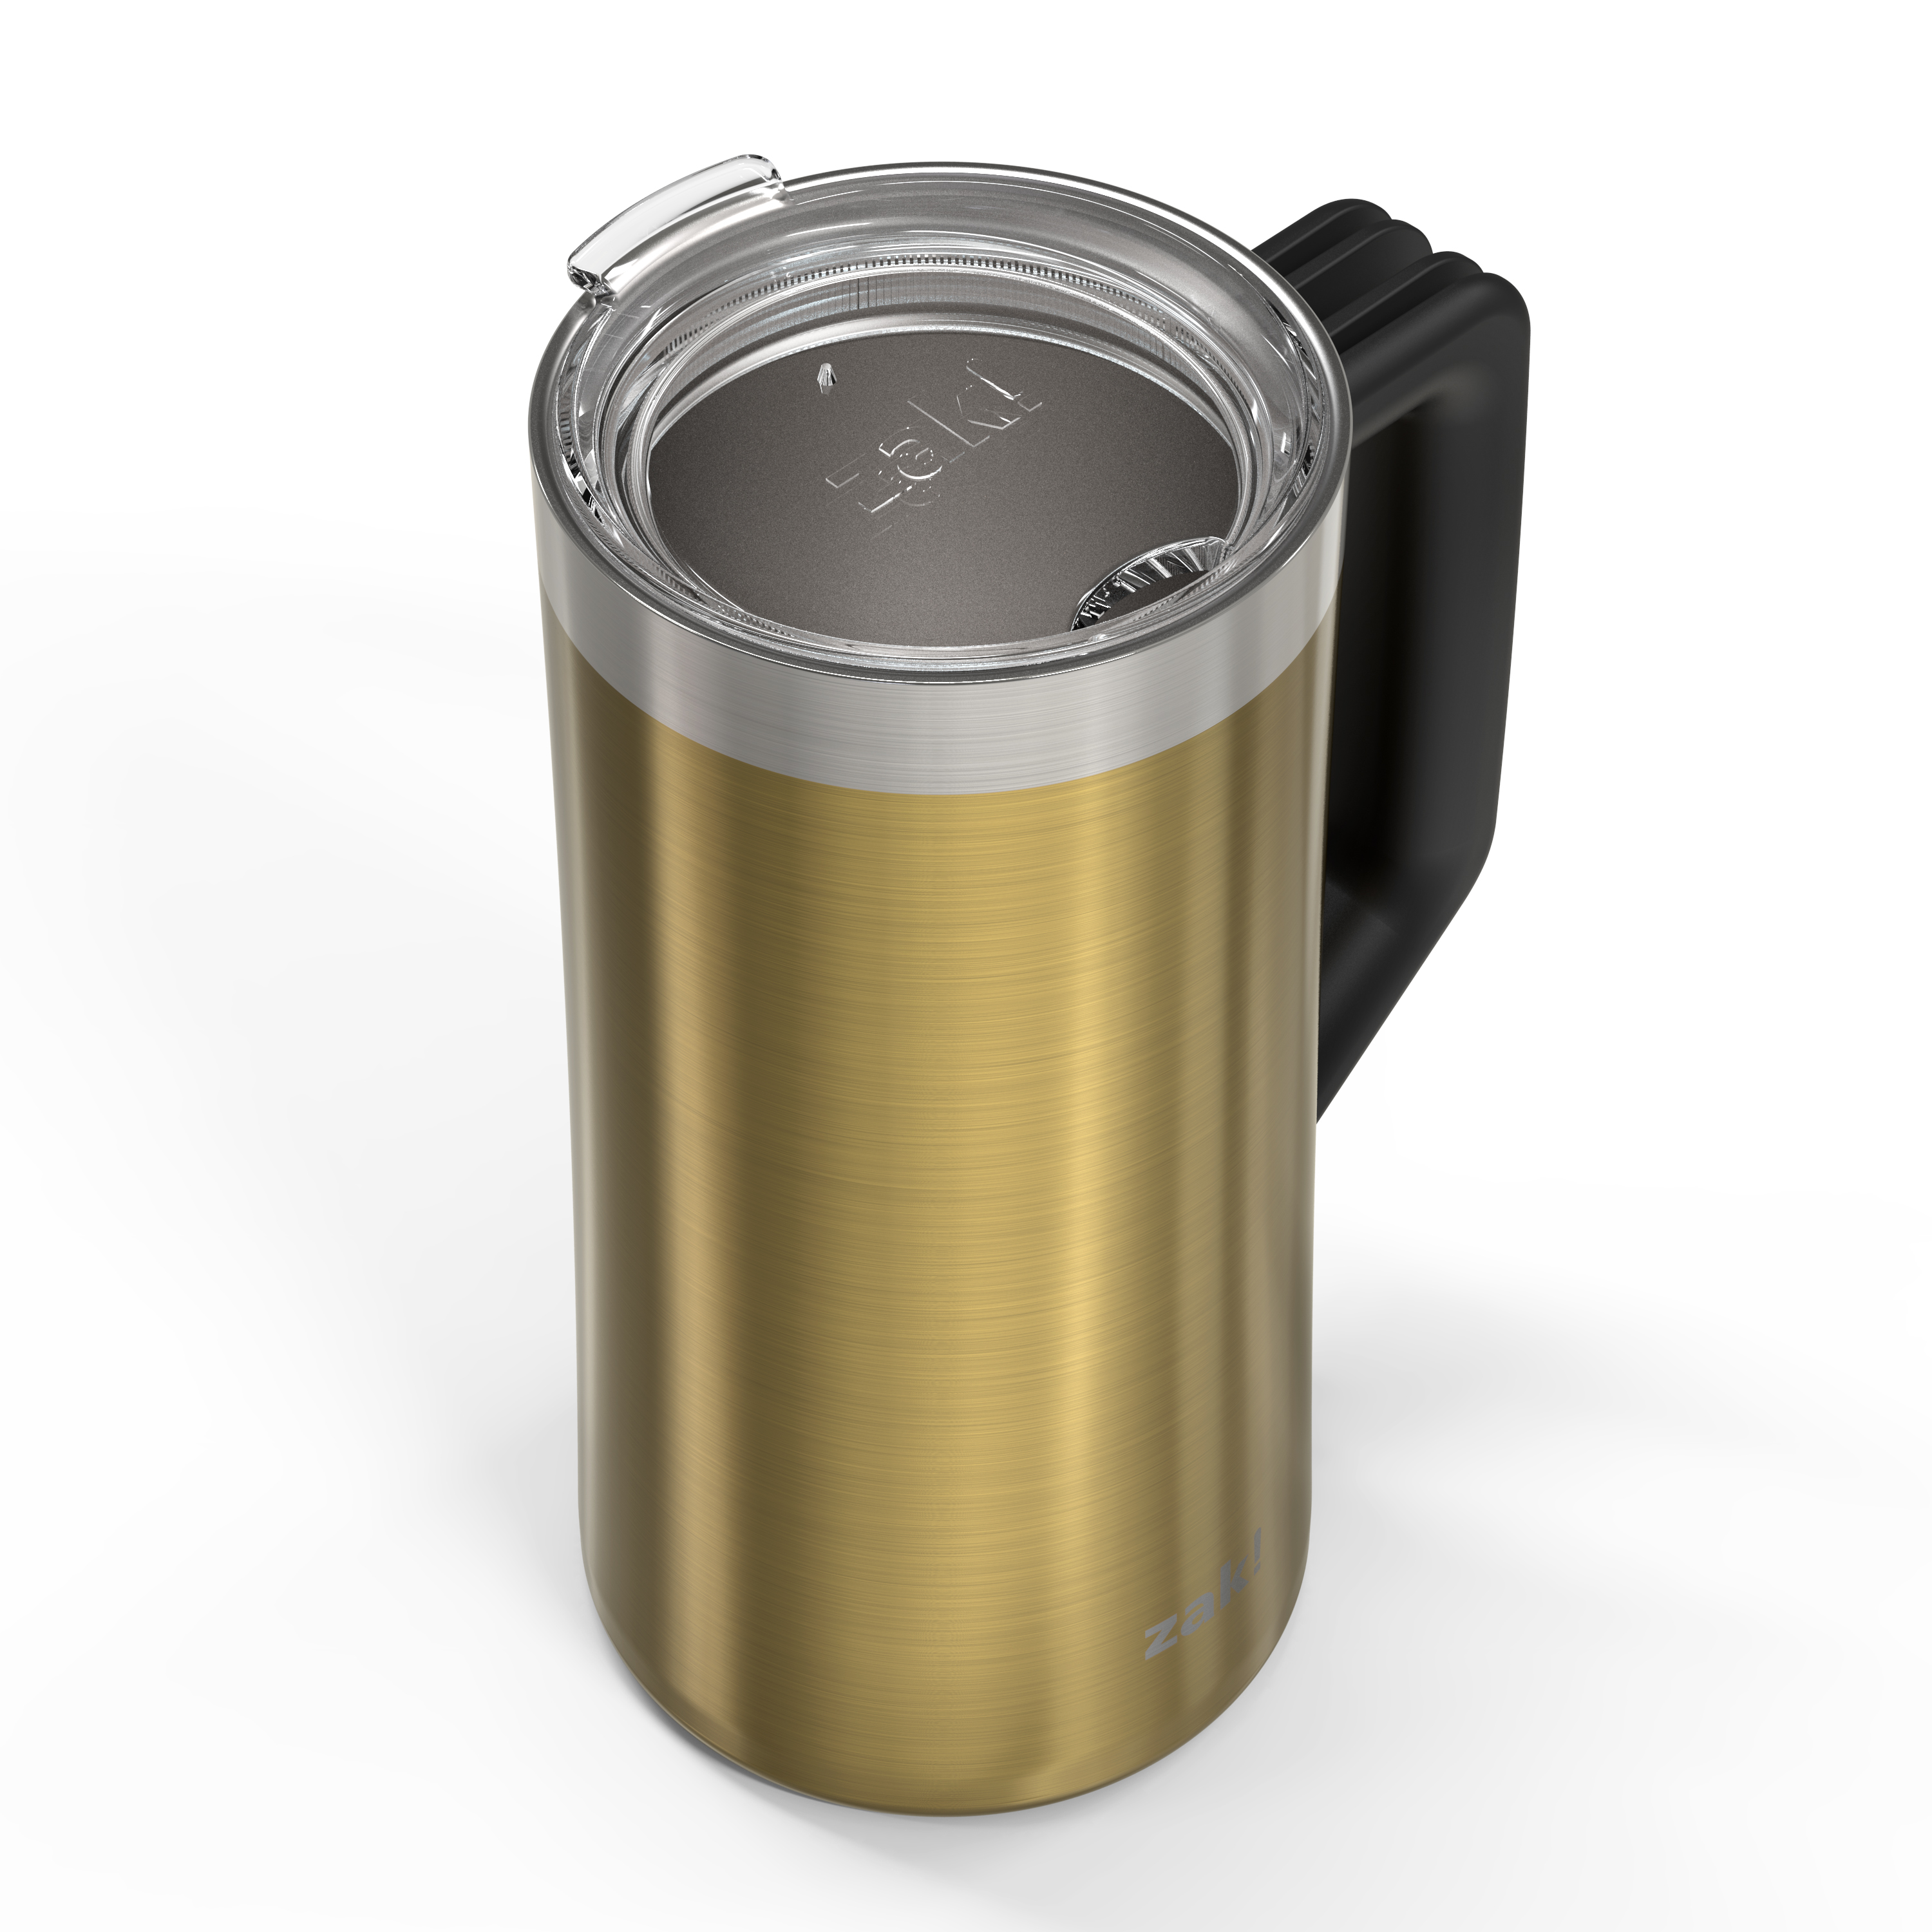 Creston 25 ounce Vacuum Insulated Stainless Steel Tumbler, Gold slideshow image 4